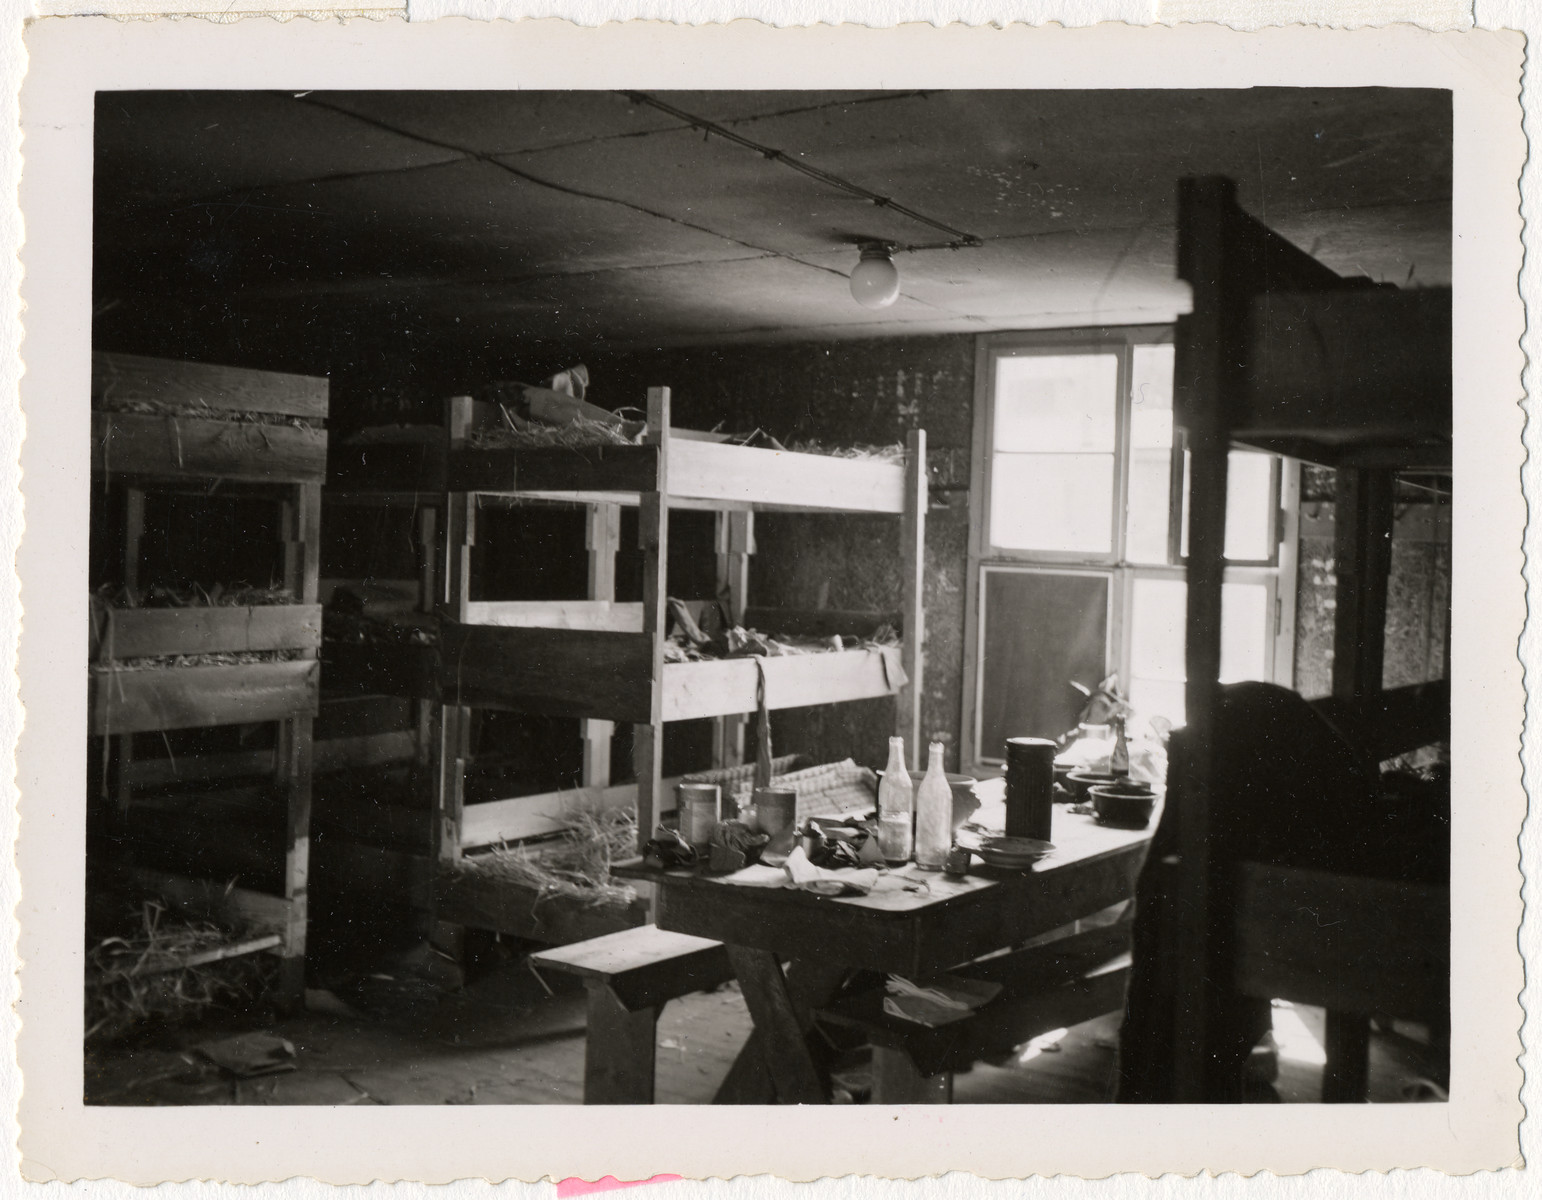 Interior view of the sleeping quarters in a barracks in an unidentified locale.